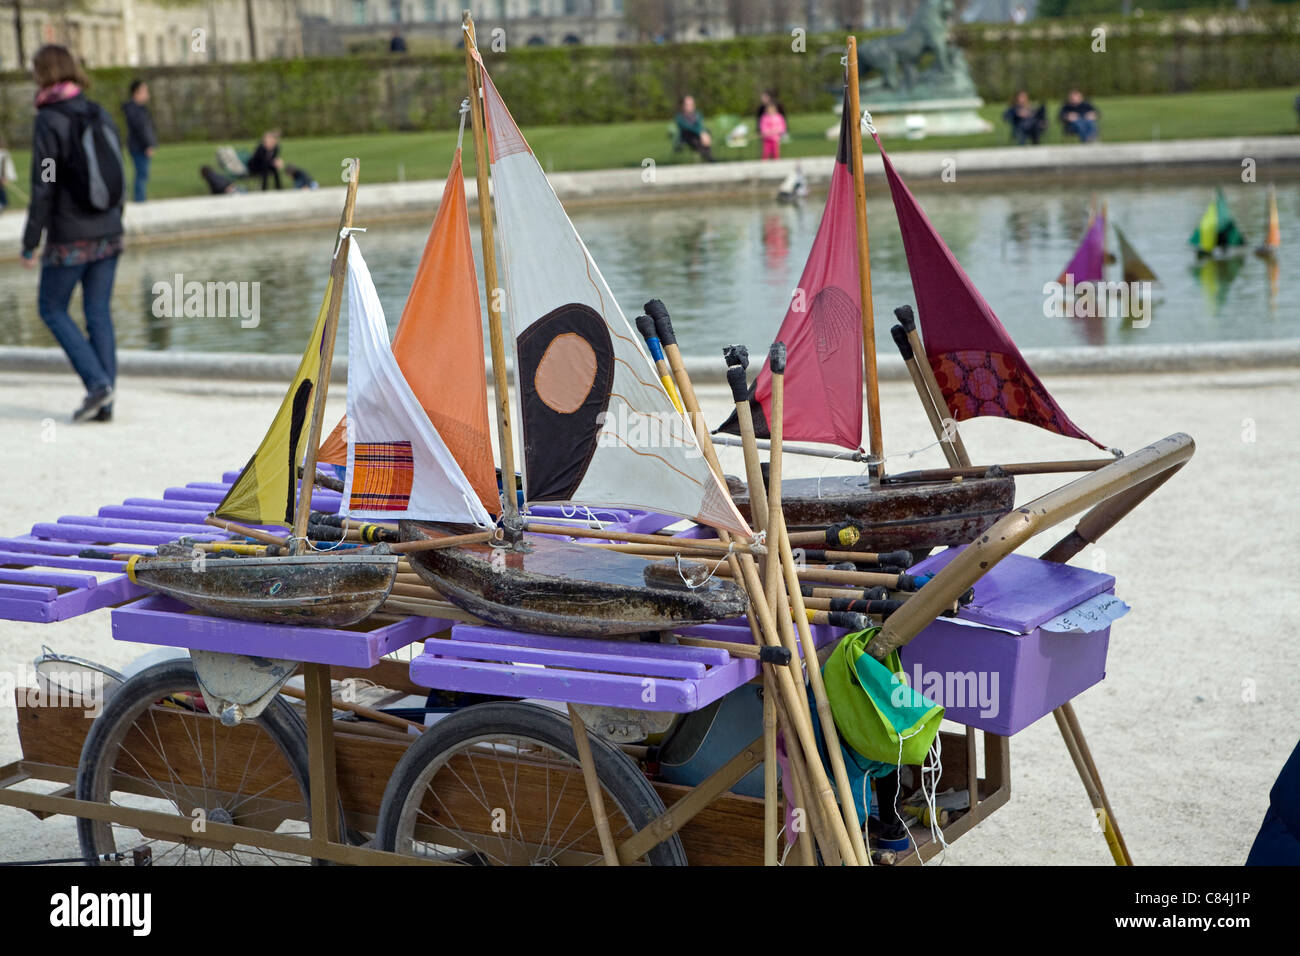 Pond Yachts For Hire For The Model Boat Pond Jardin Du Luxembourg